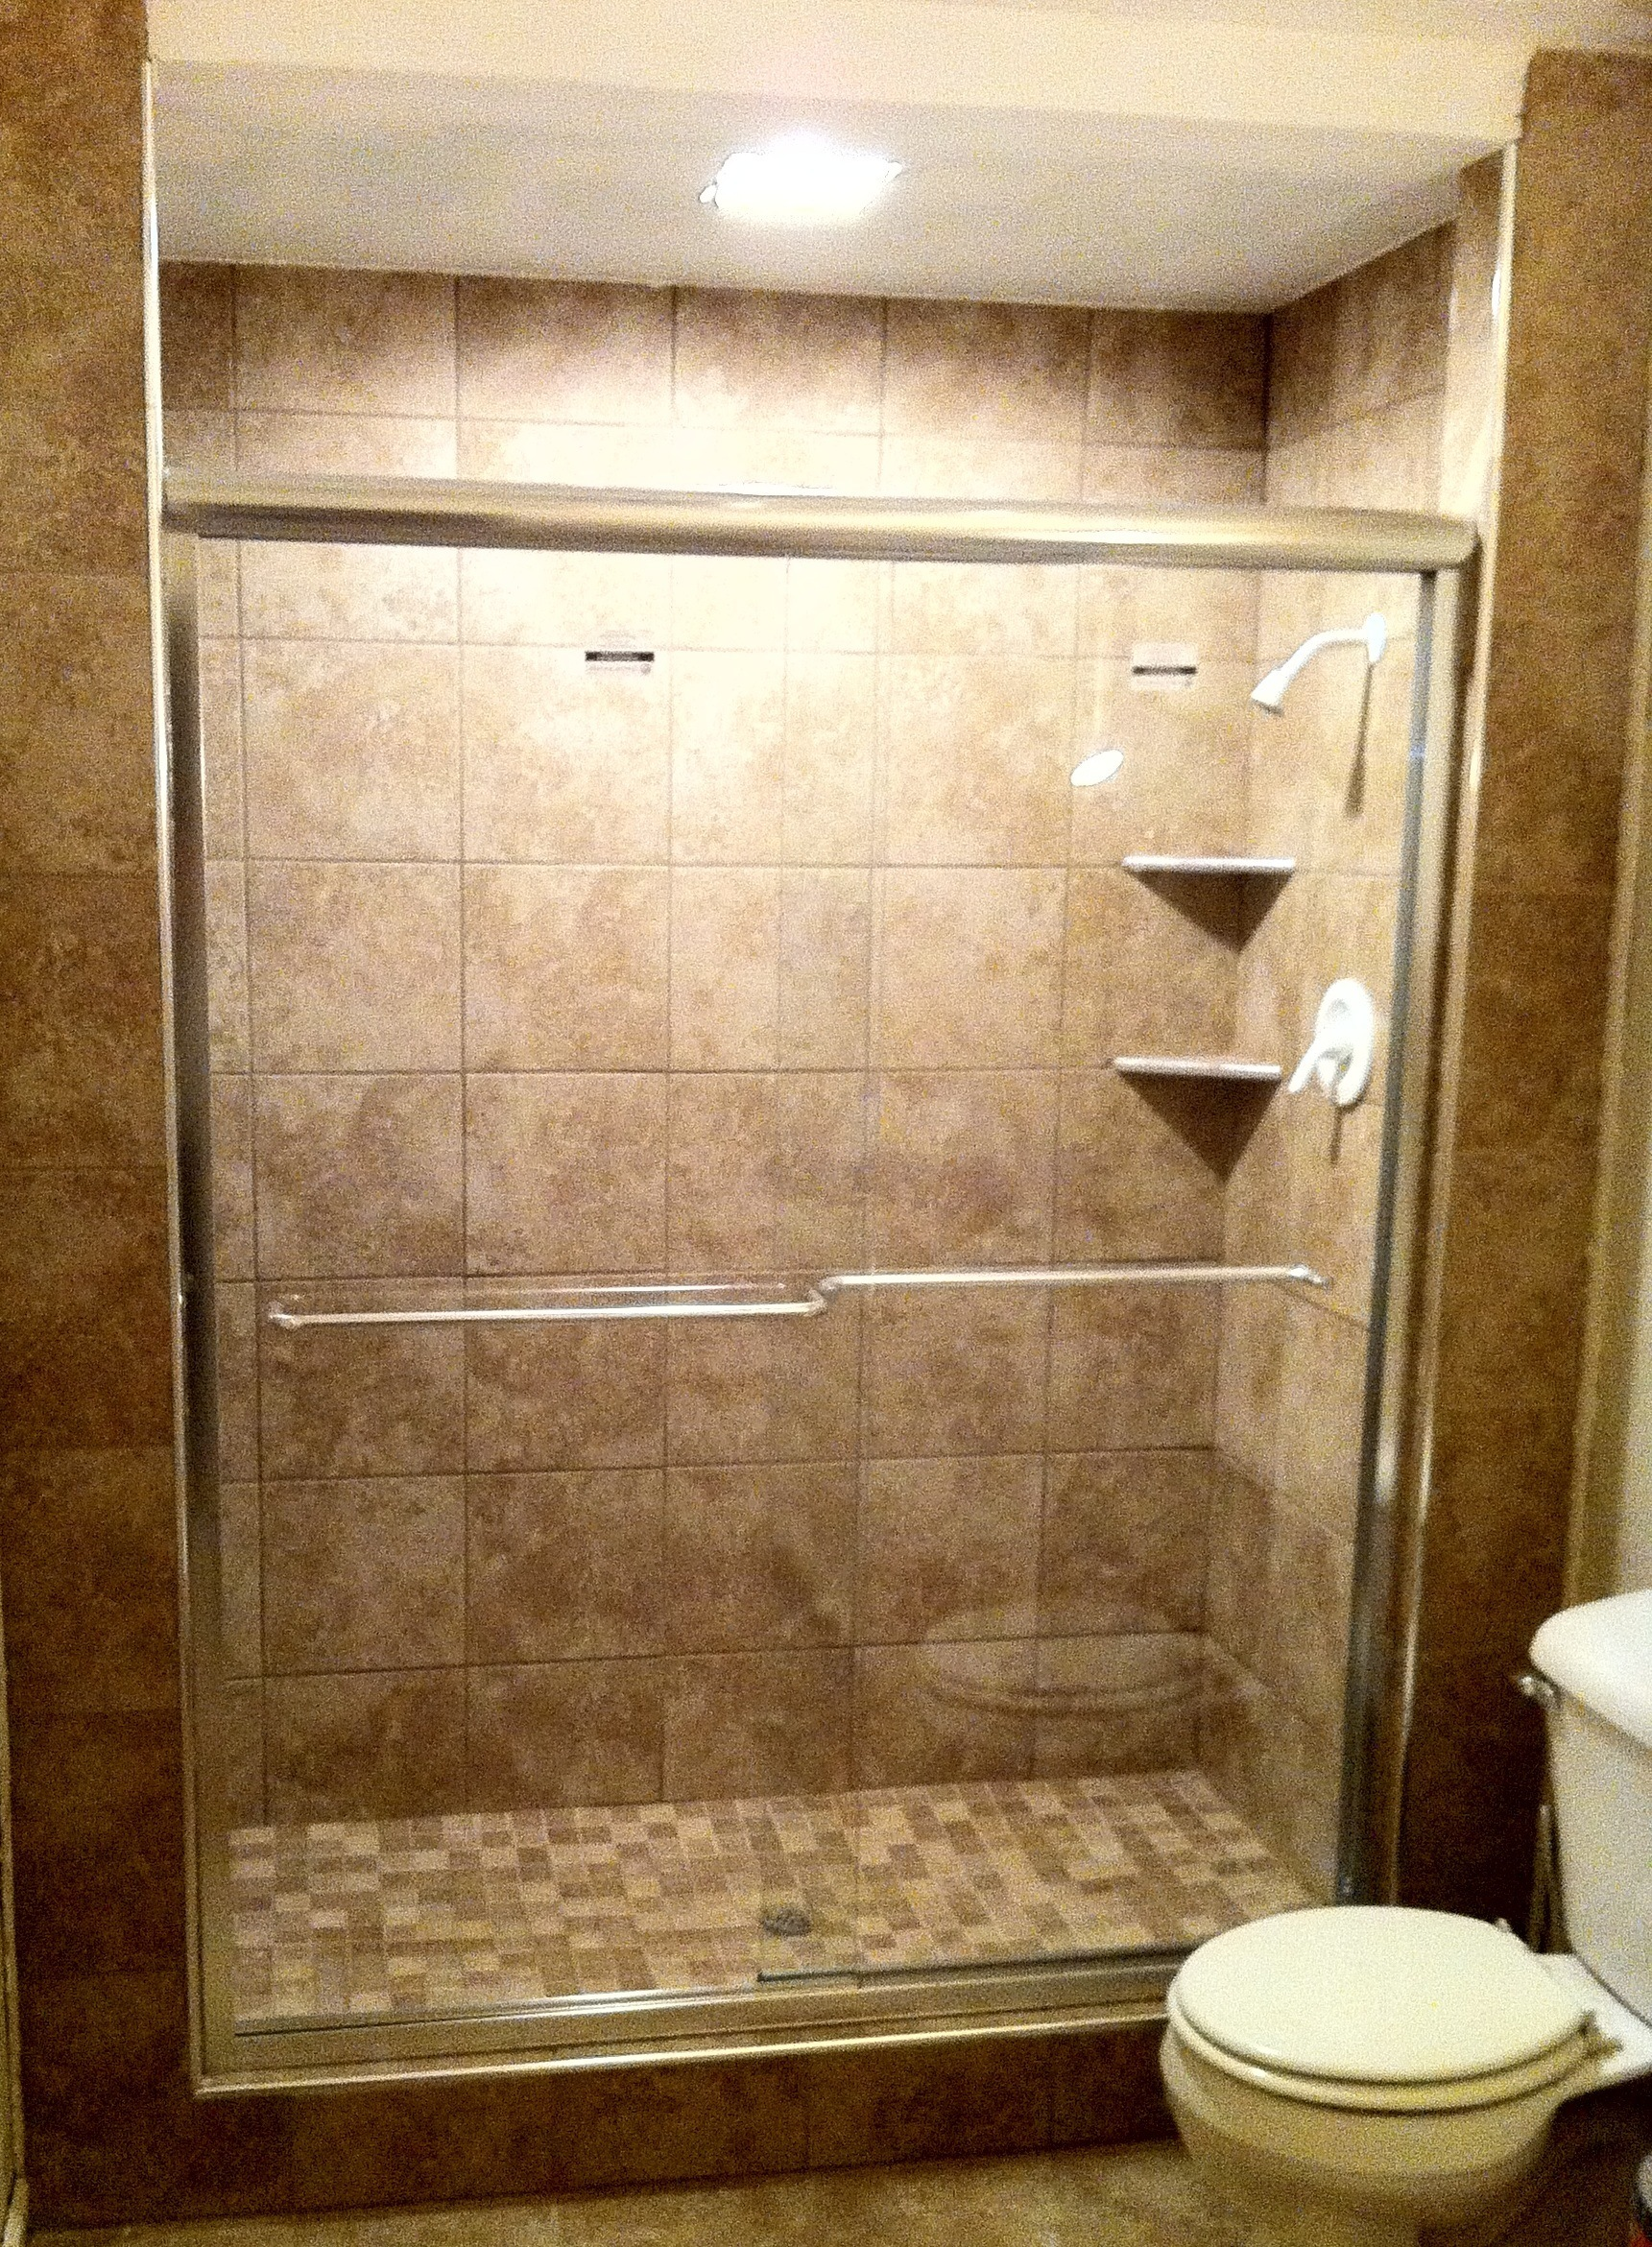 Bathroom remodel cost tile shower cost of tiling a bathroom bathroom - 1000 Images About Tiled Showers On Pinterest Colors